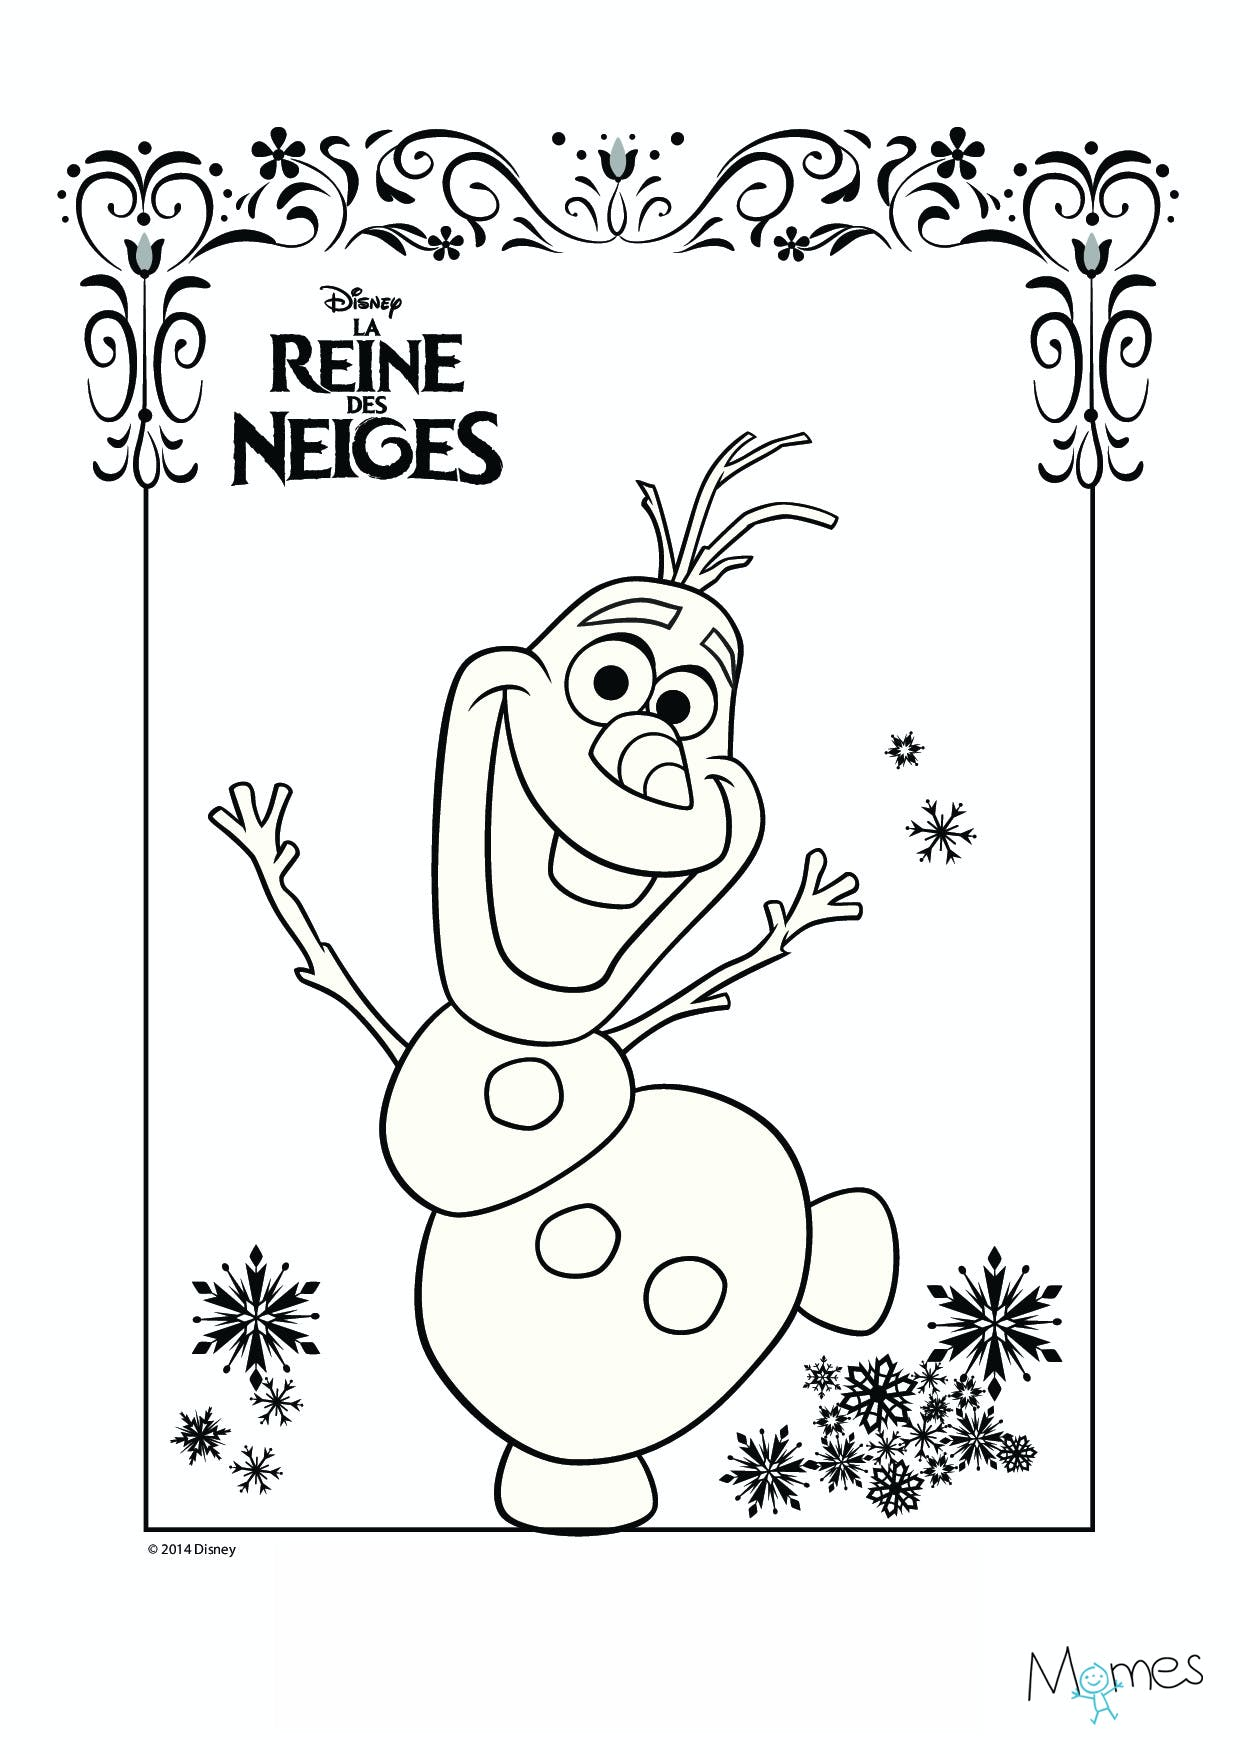 Coloriages La Reine des Neiges - Coloriage Princesse - Momes.net